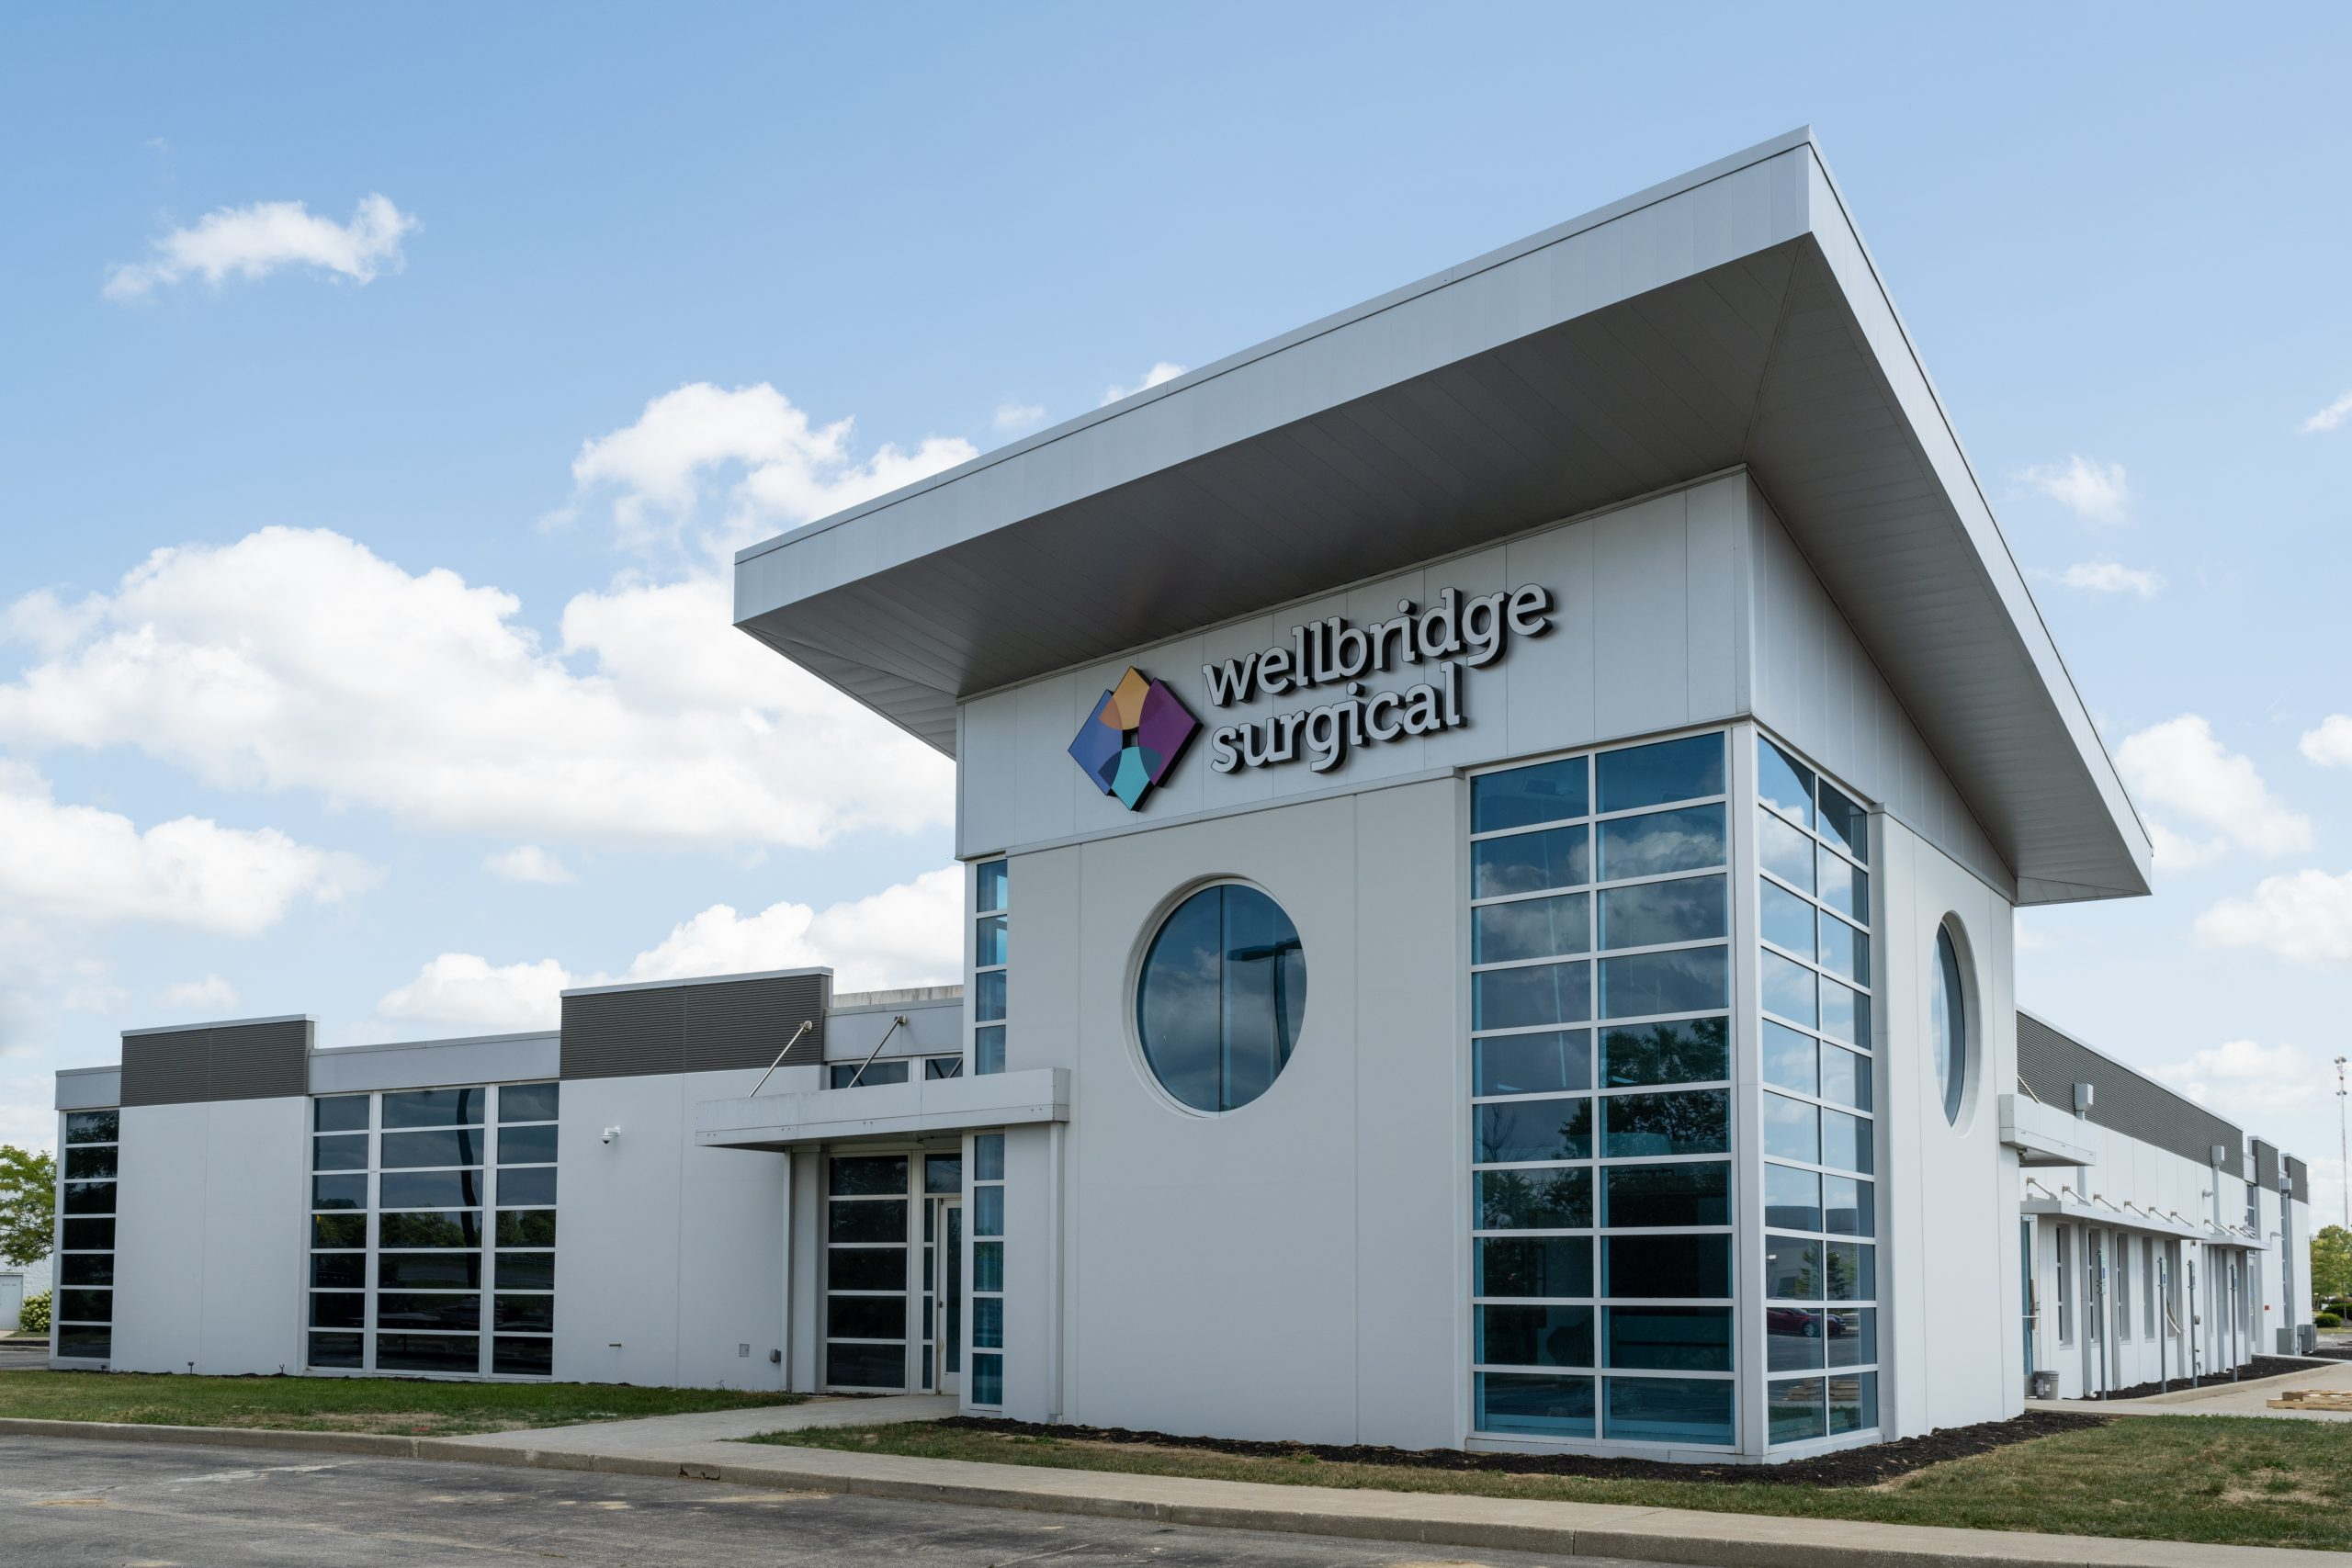 WELLBRIDGE SURGICAL: A Revolution in Indiana Health Care